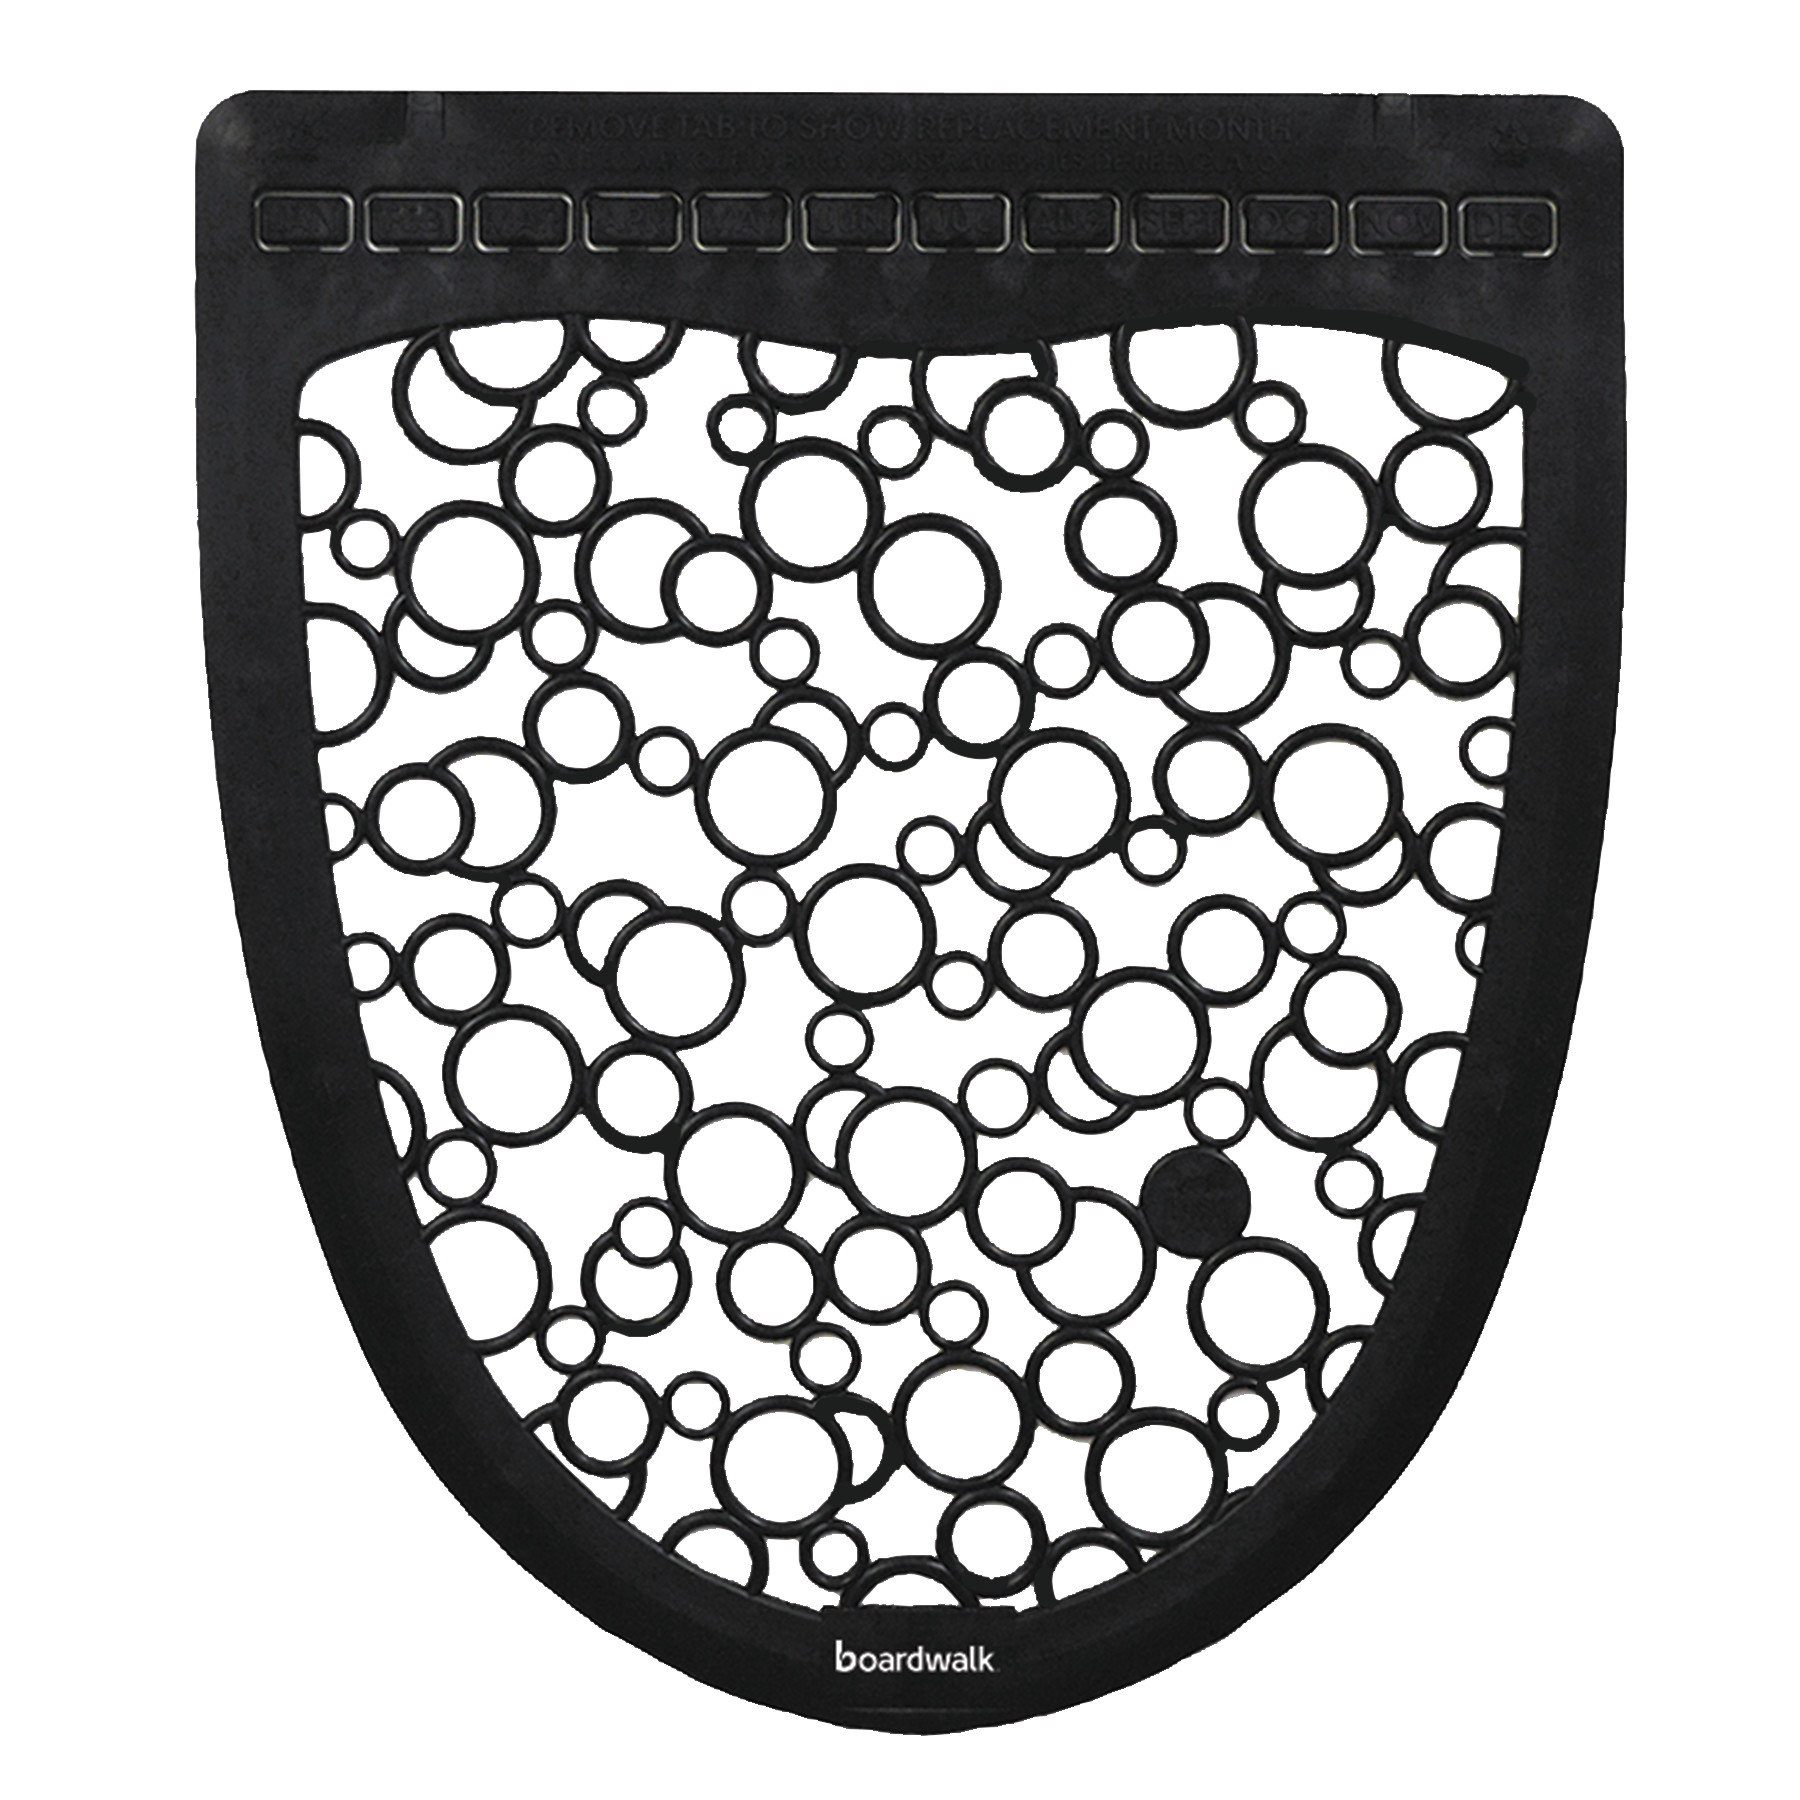 Boardwalk 2.0 Rubber Urinal Mats, Black/White, 6 count -BWKUMBW